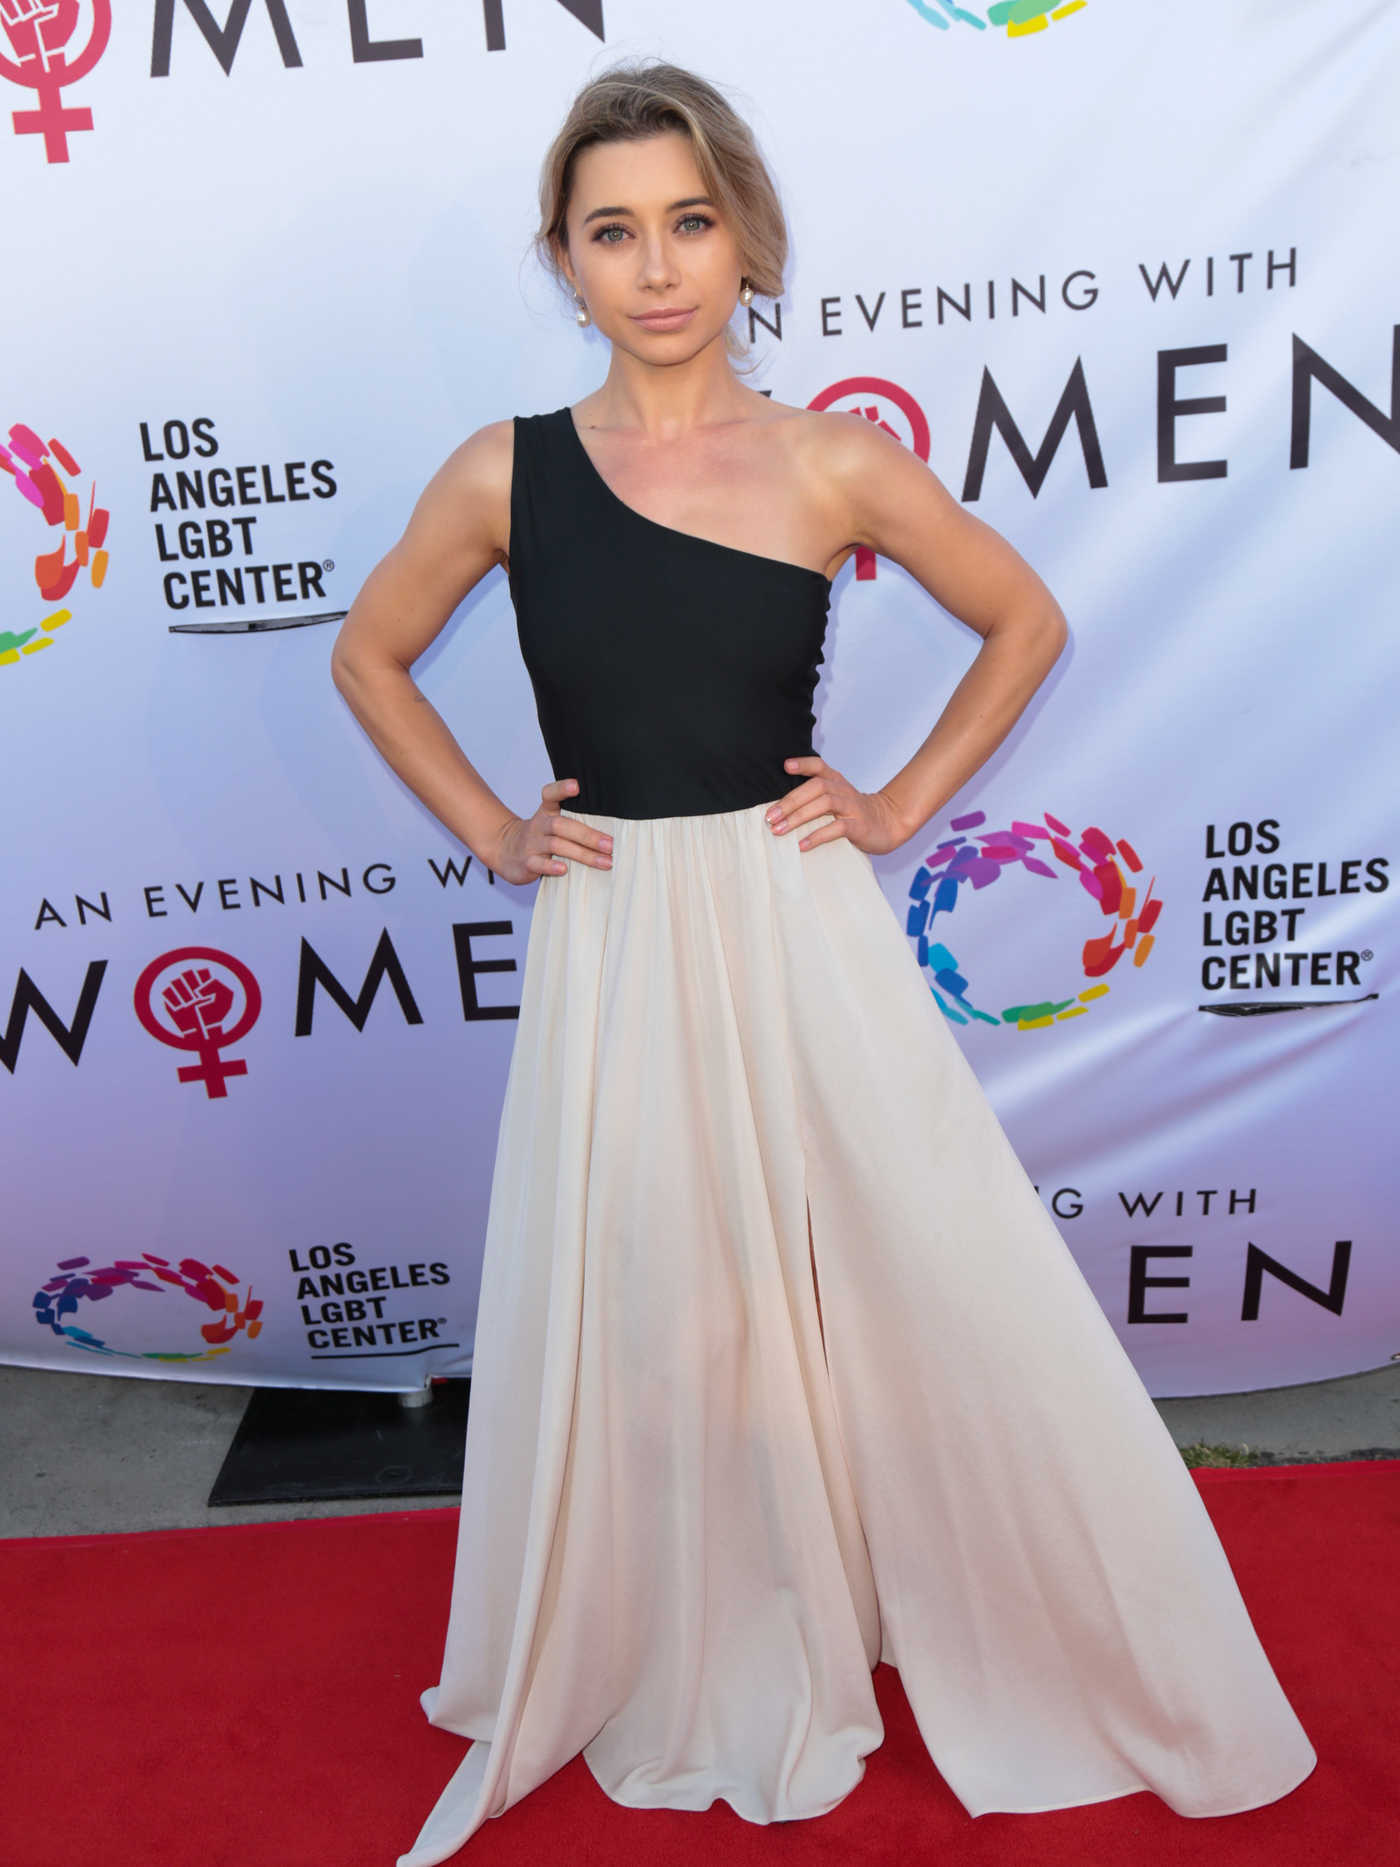 Olesya Rulin Arrives at the LGBT Center's An Evening With Women in Los Angeles 05/13/2017